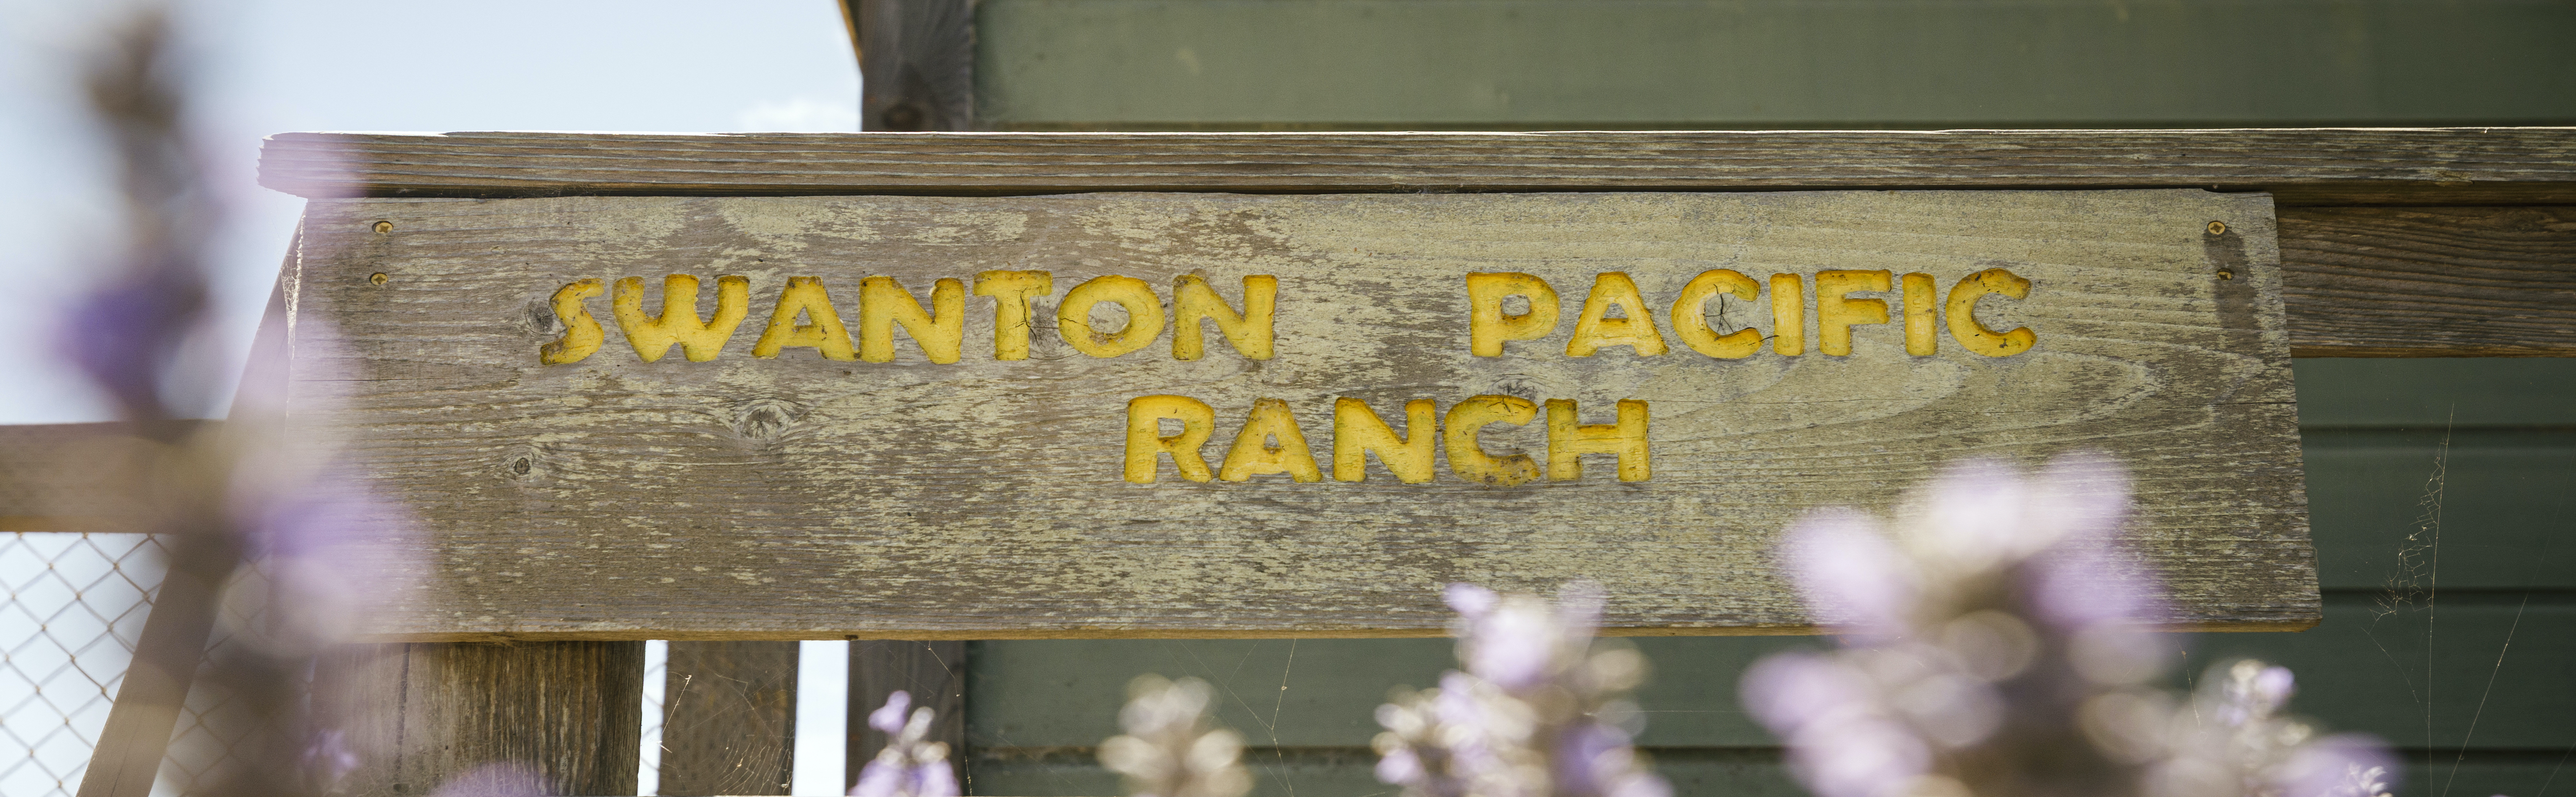 Swanton Pacific Ranch